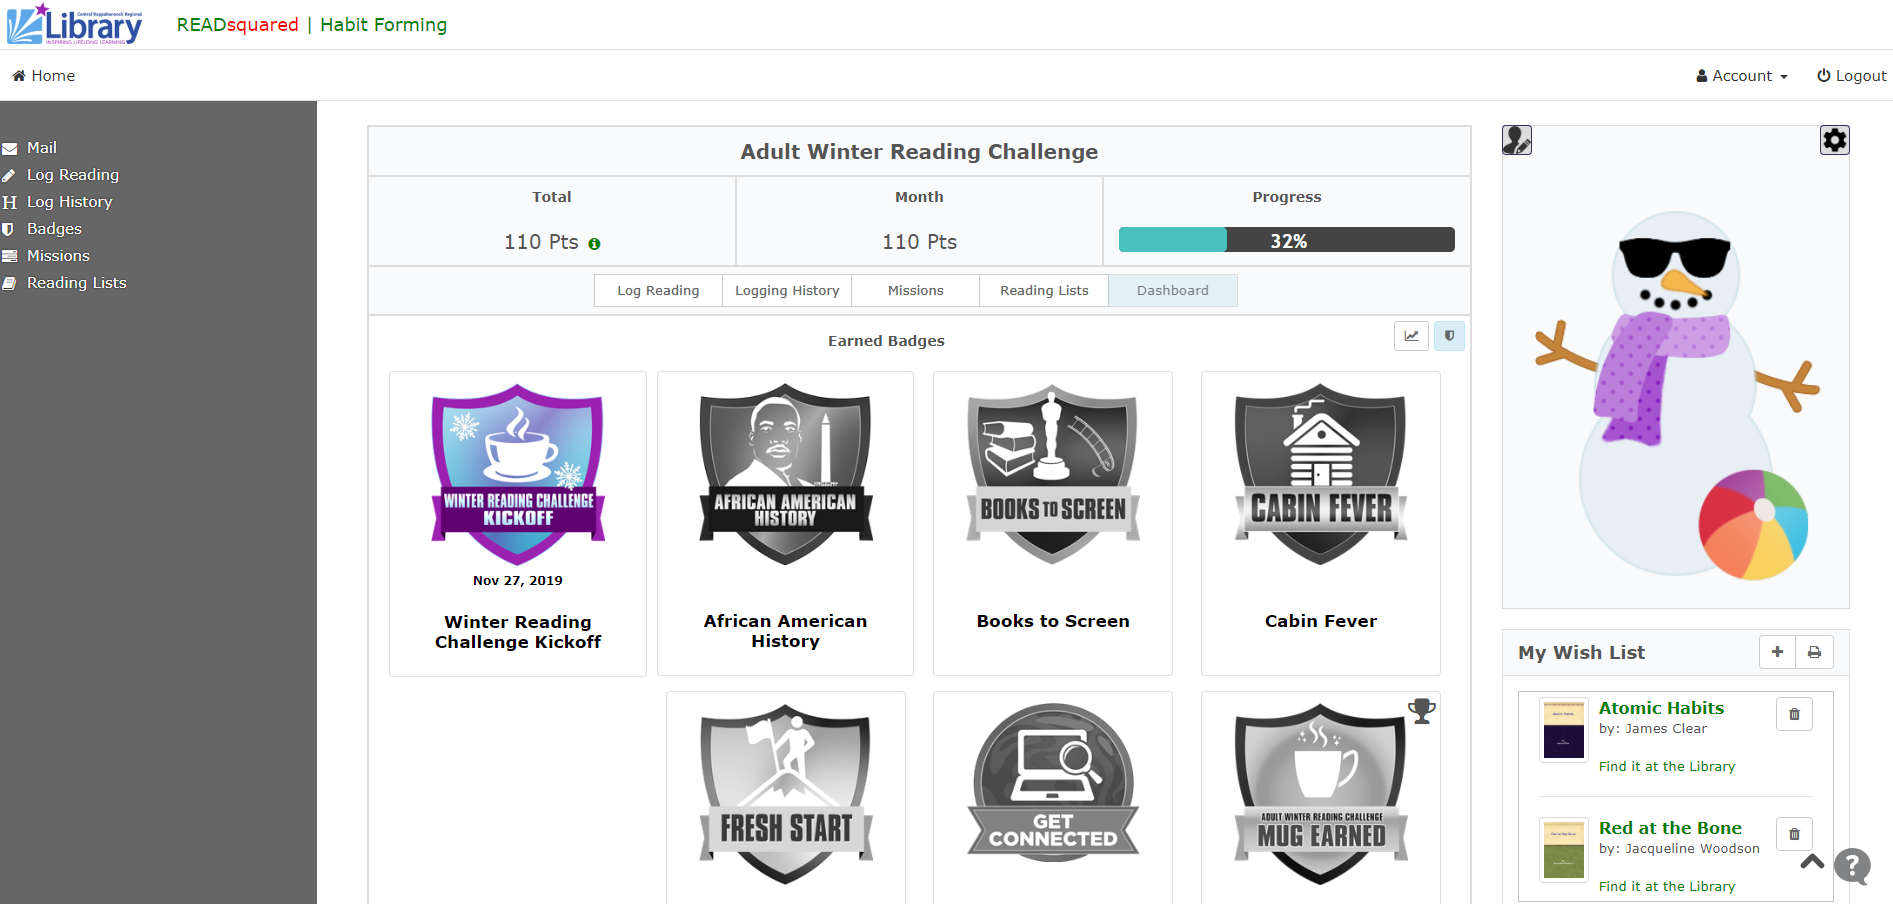 Screenshot of Adult Winter Reading Challenge activity dashboard